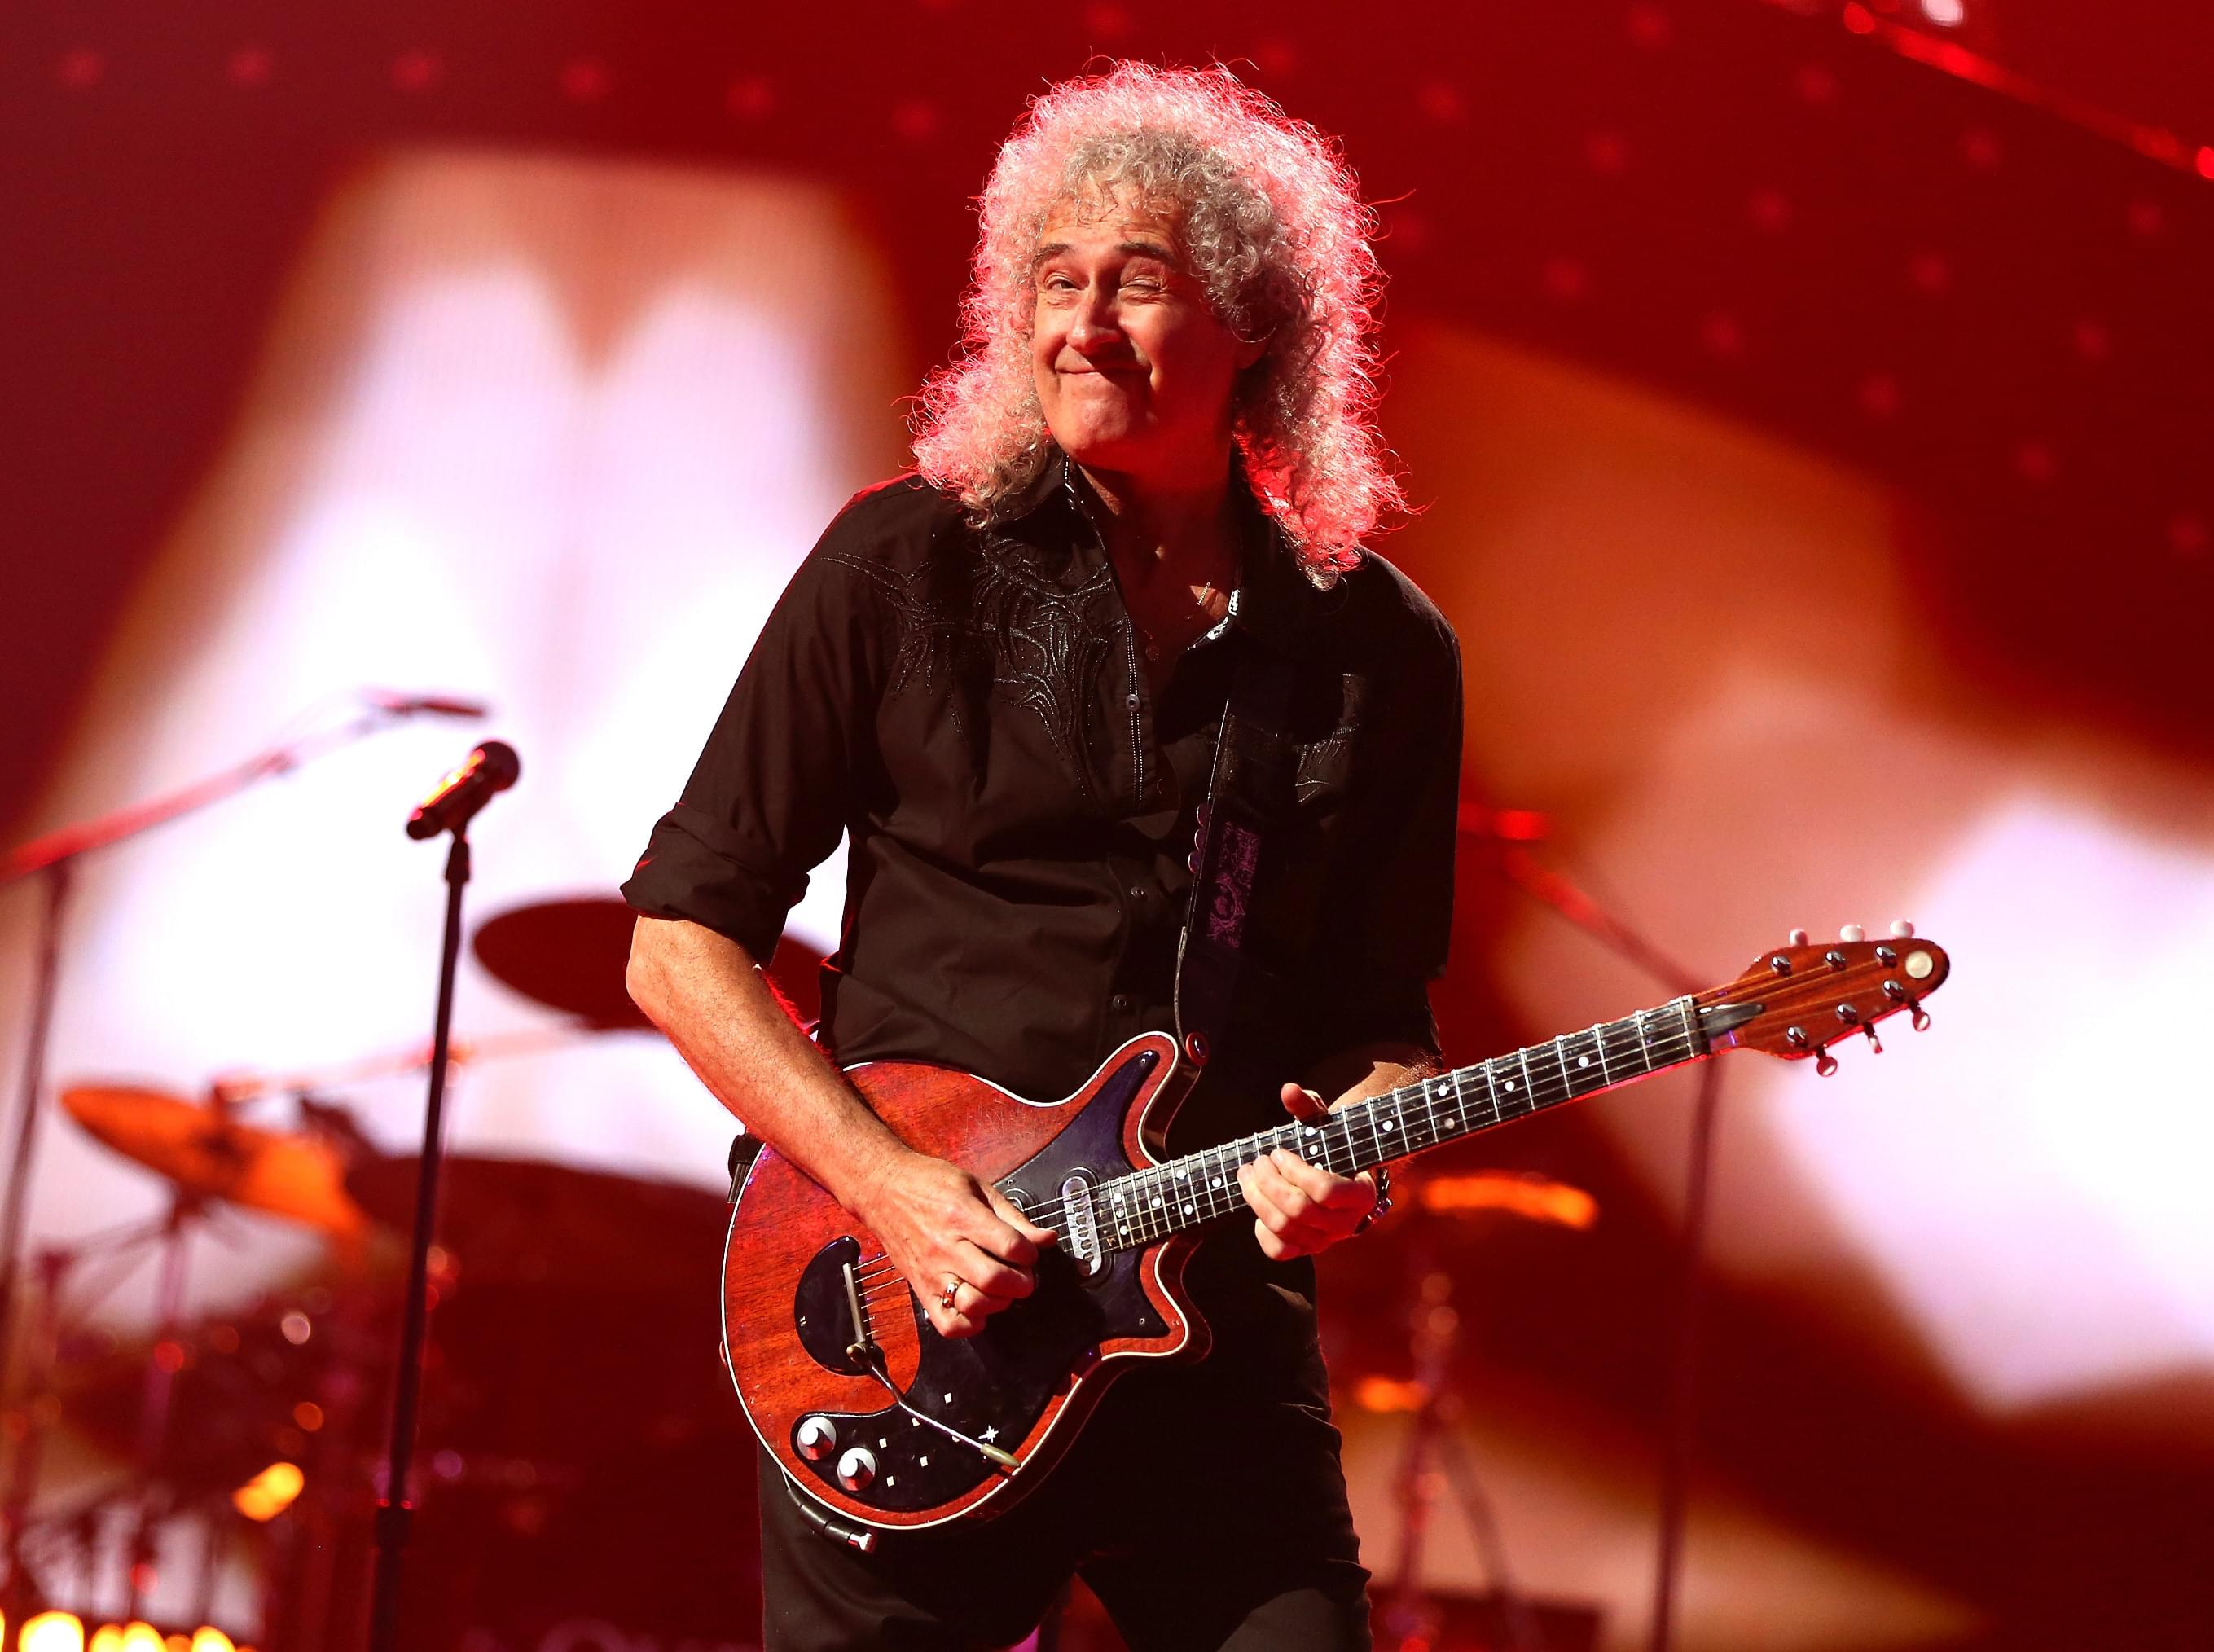 Queen's Brian May and a bunch of guitarists performed this awesome instrumental cover of Bohemian Rhapsody